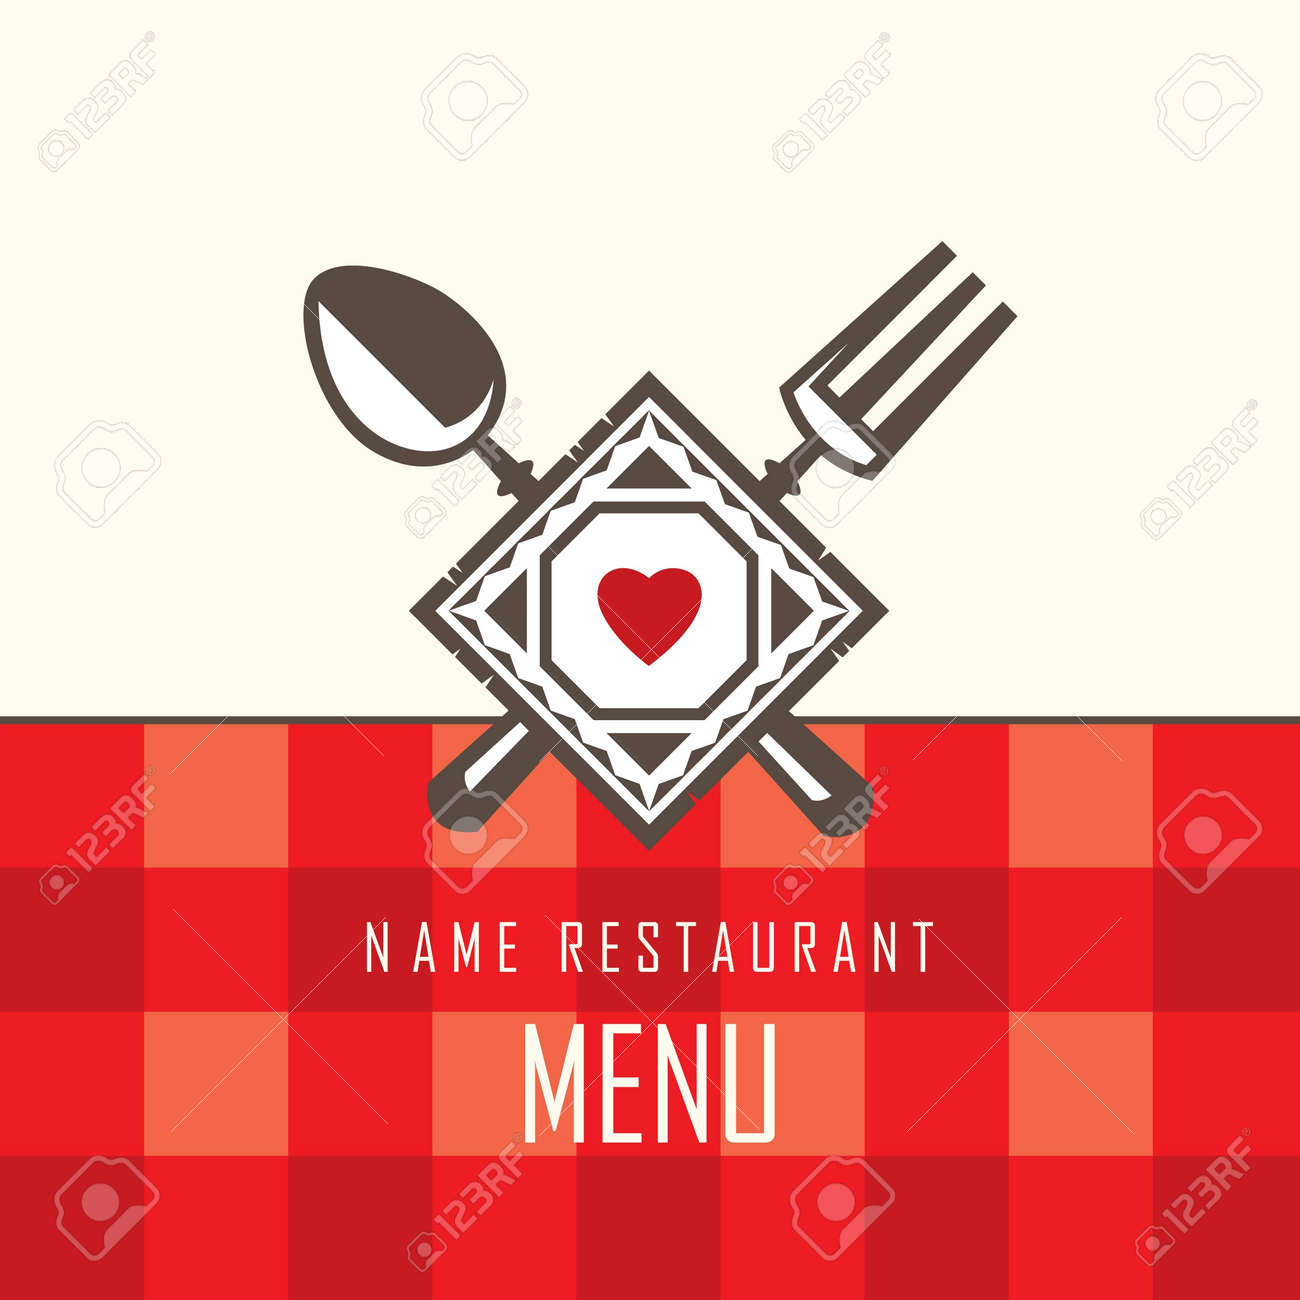 restaurant menu design with spoon and fork Stock Vector - 13331369